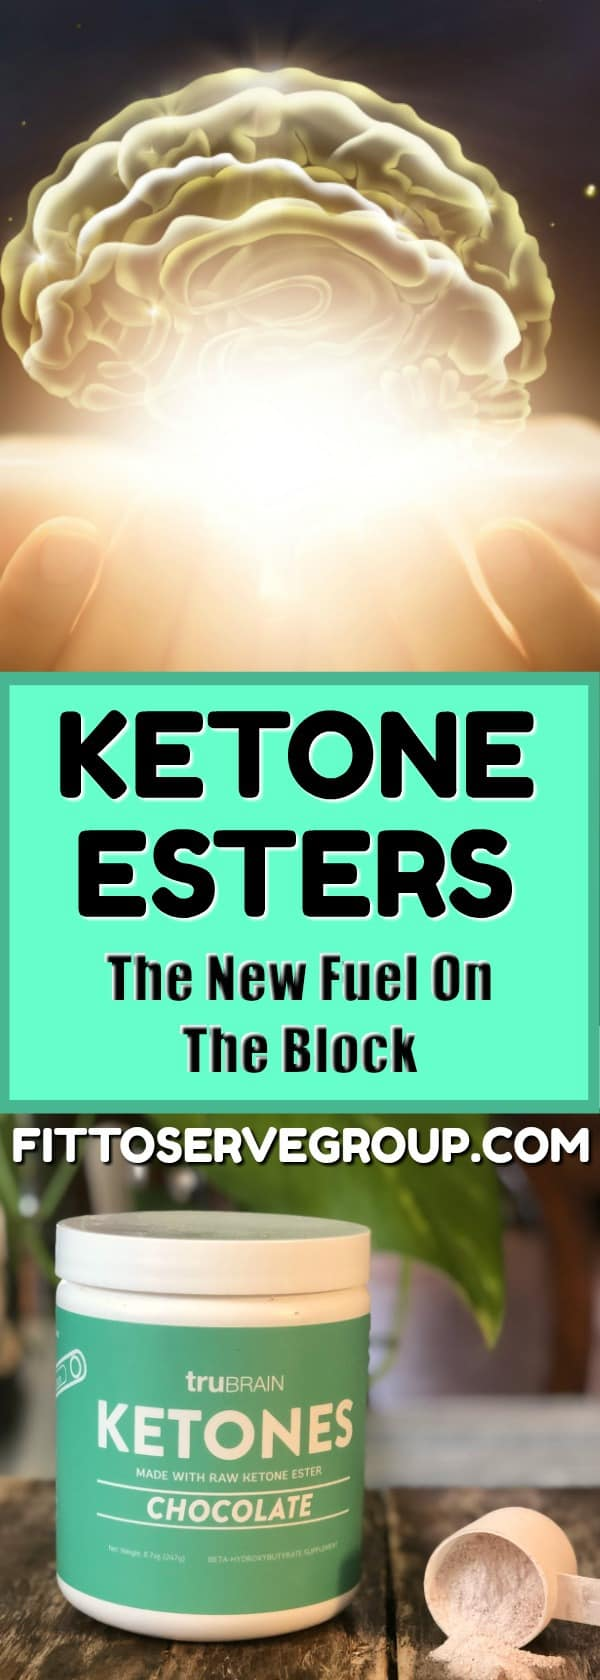 Ketone esters the new fuel on the block